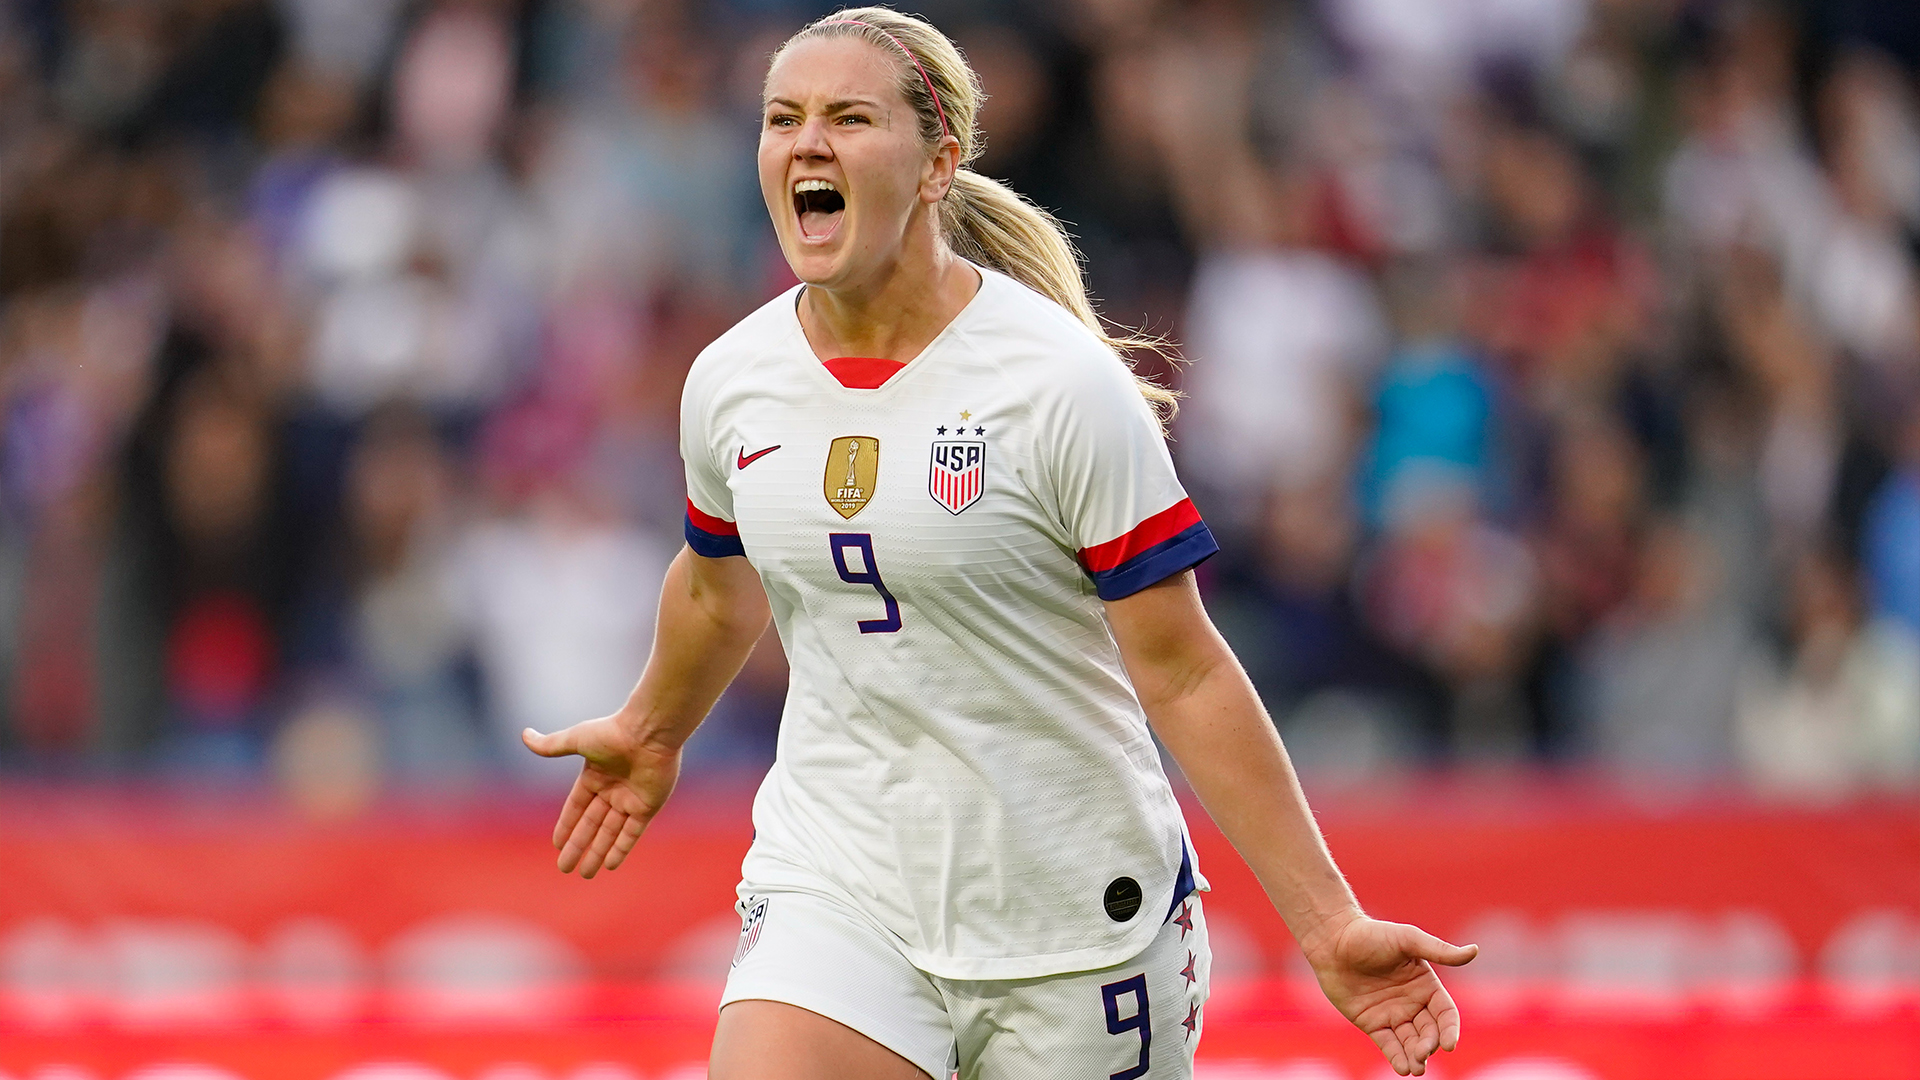 USWNT reign supreme once more in Concacaf